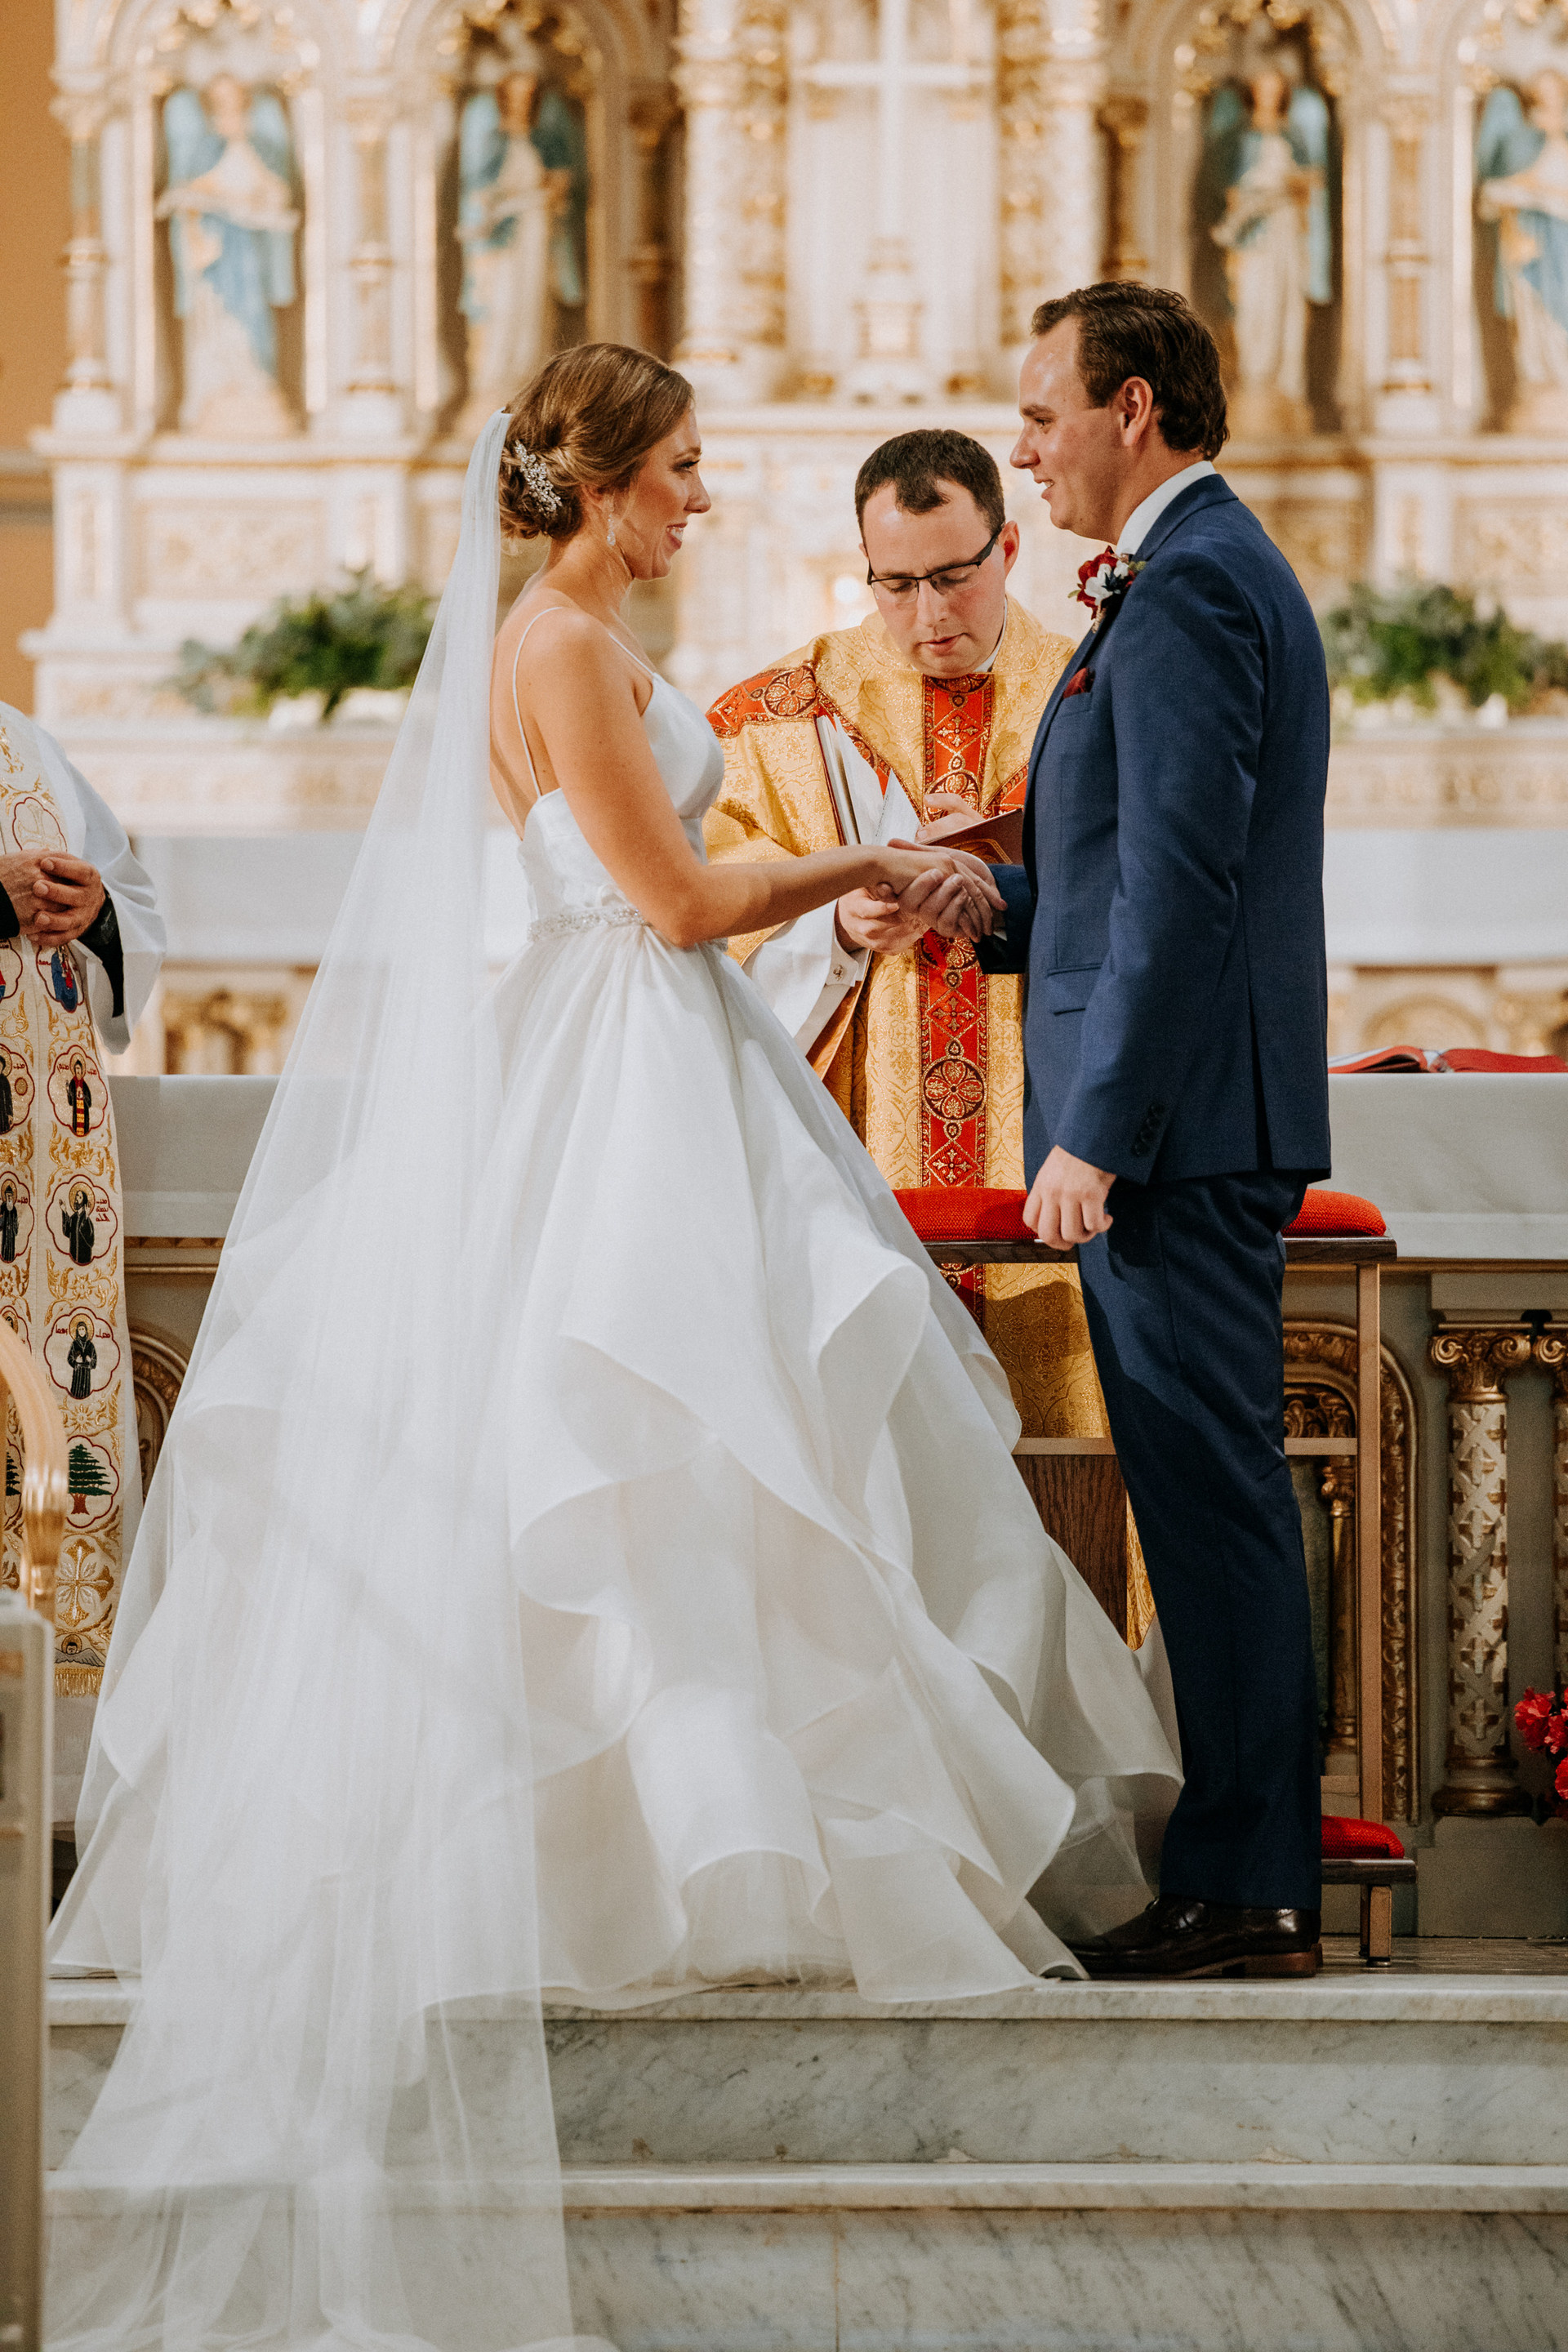 A Catholic Wedding With Flair